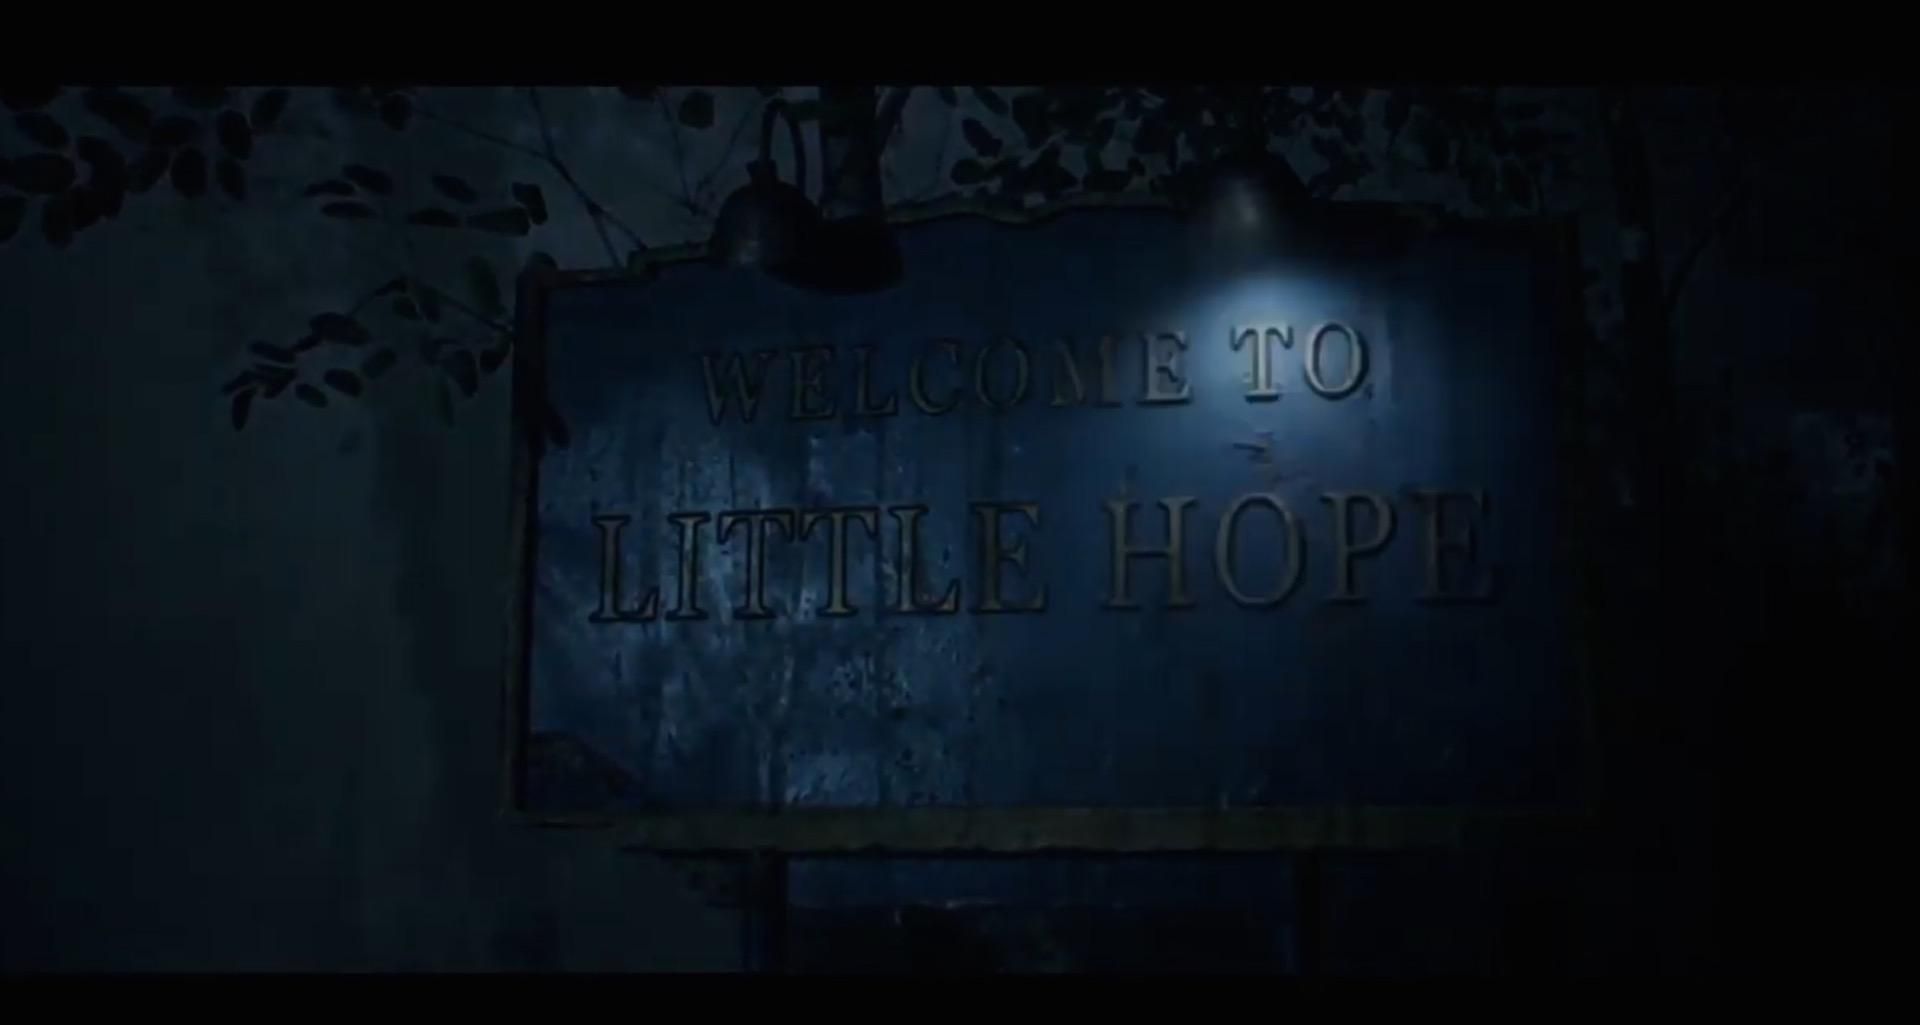 Next game in Dark Pictures anthology Little Hope teased